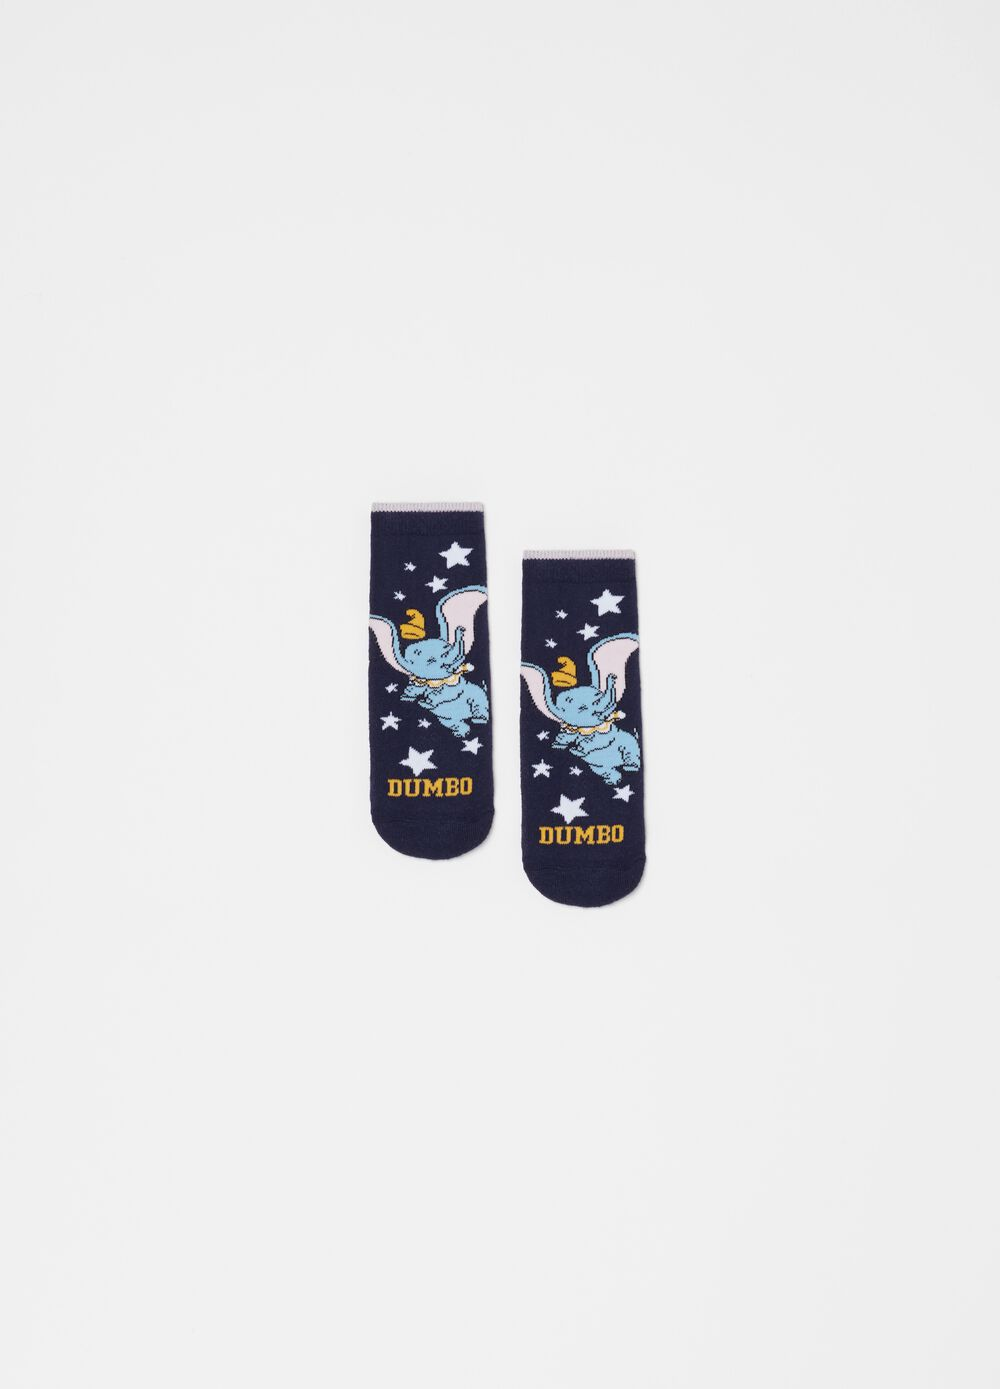 Short Dumbo slipper socks